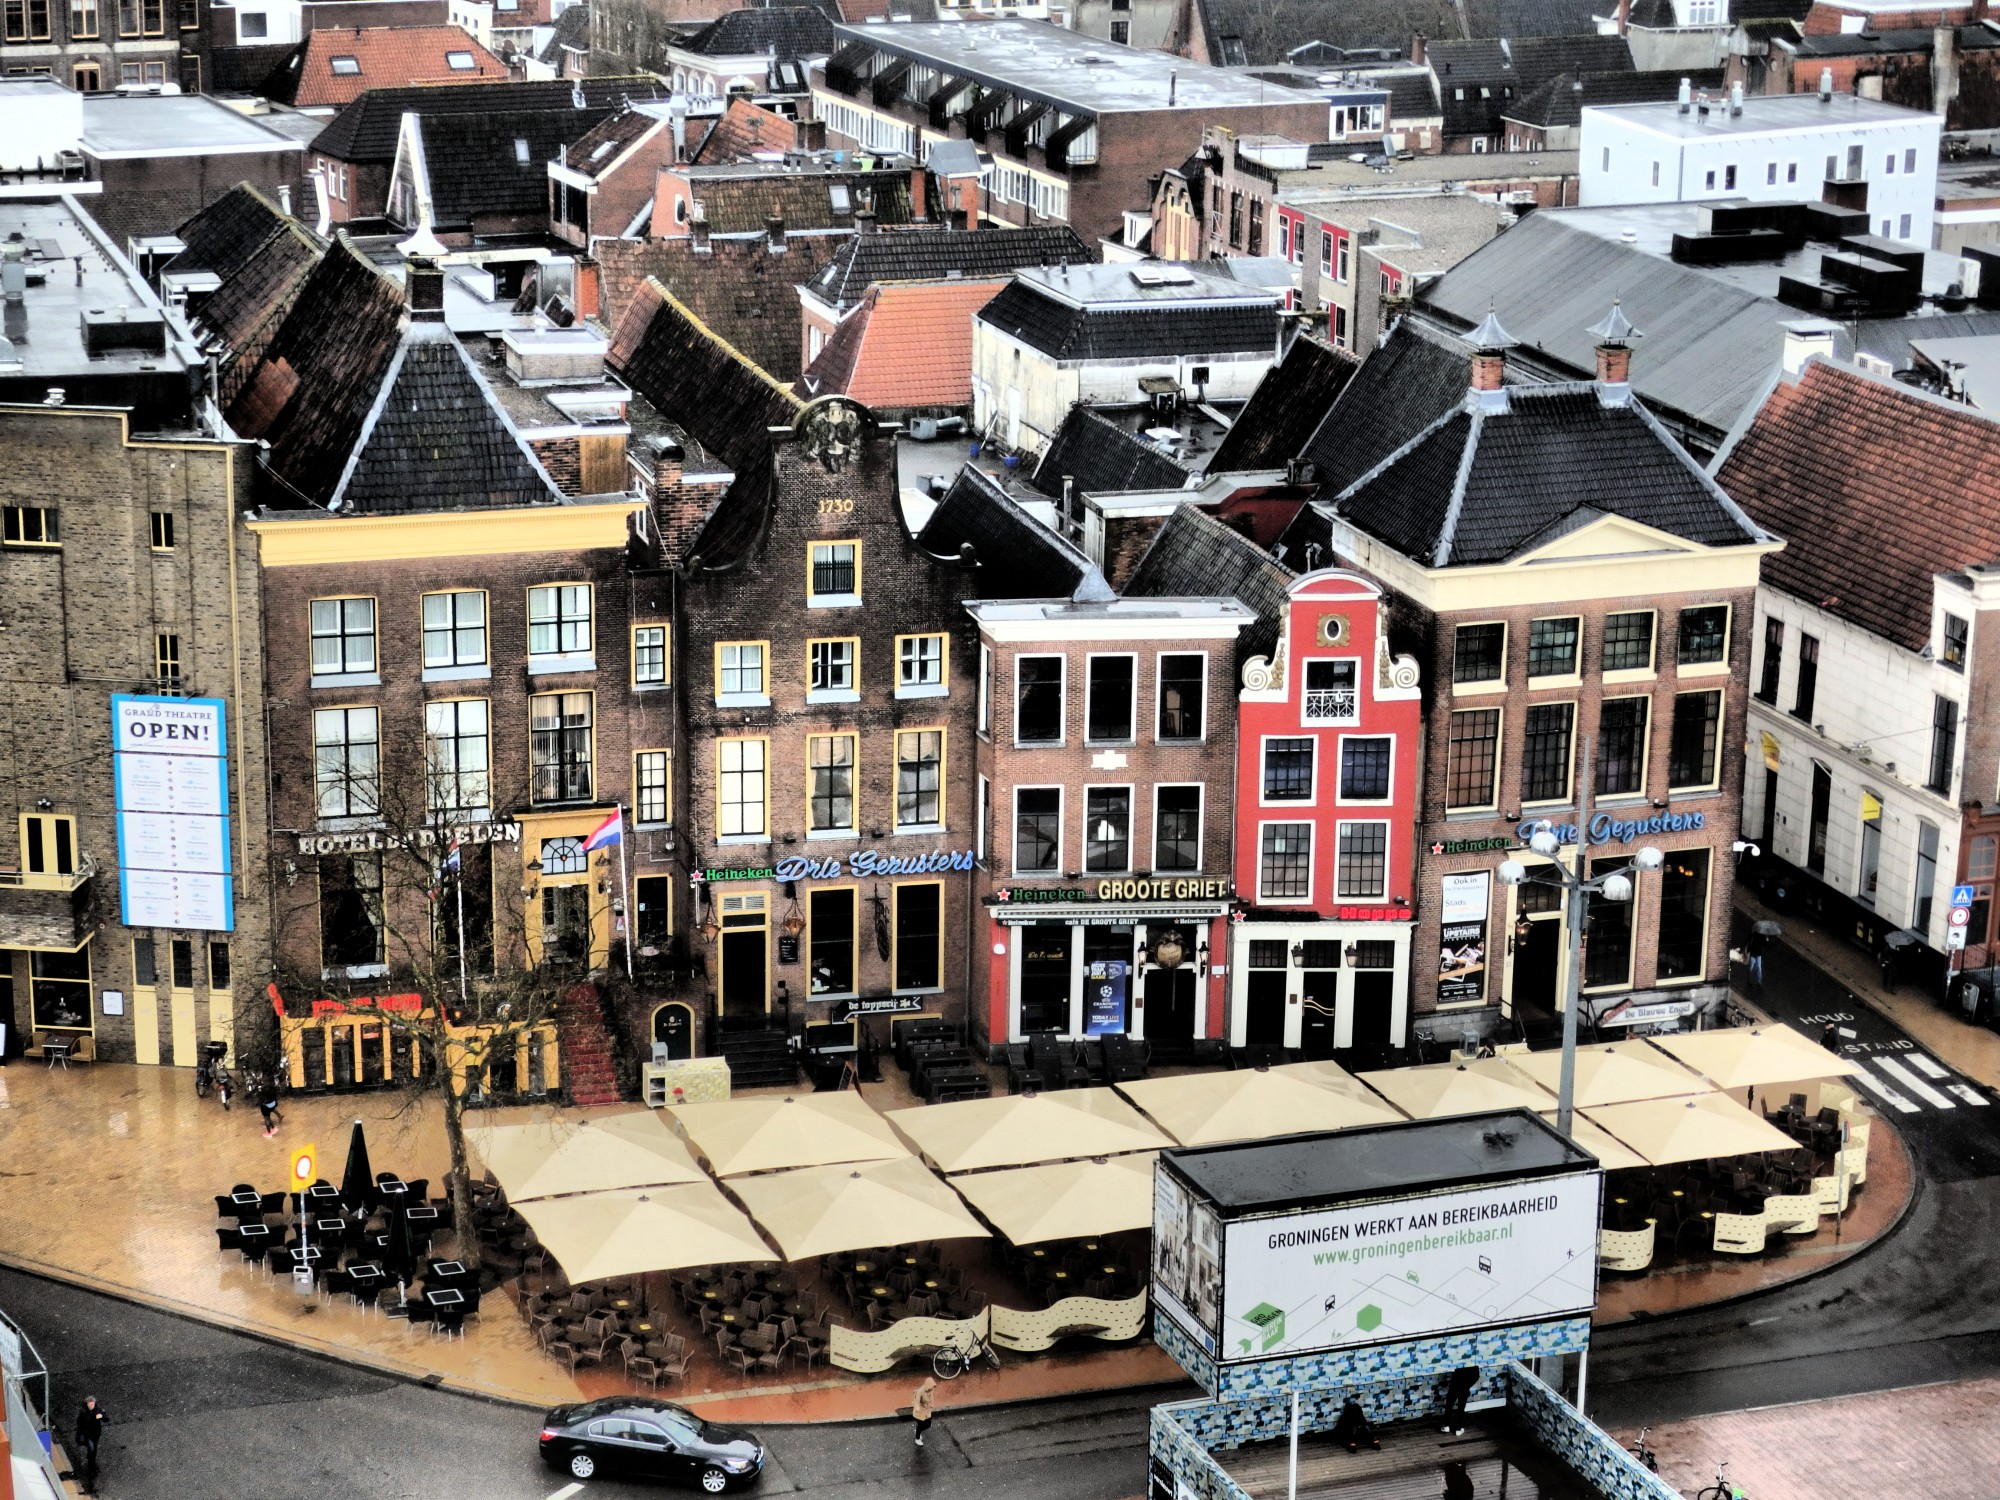 Buildings on the Grote Markt that survived the war. Those are sidewalk cafe tables in front.